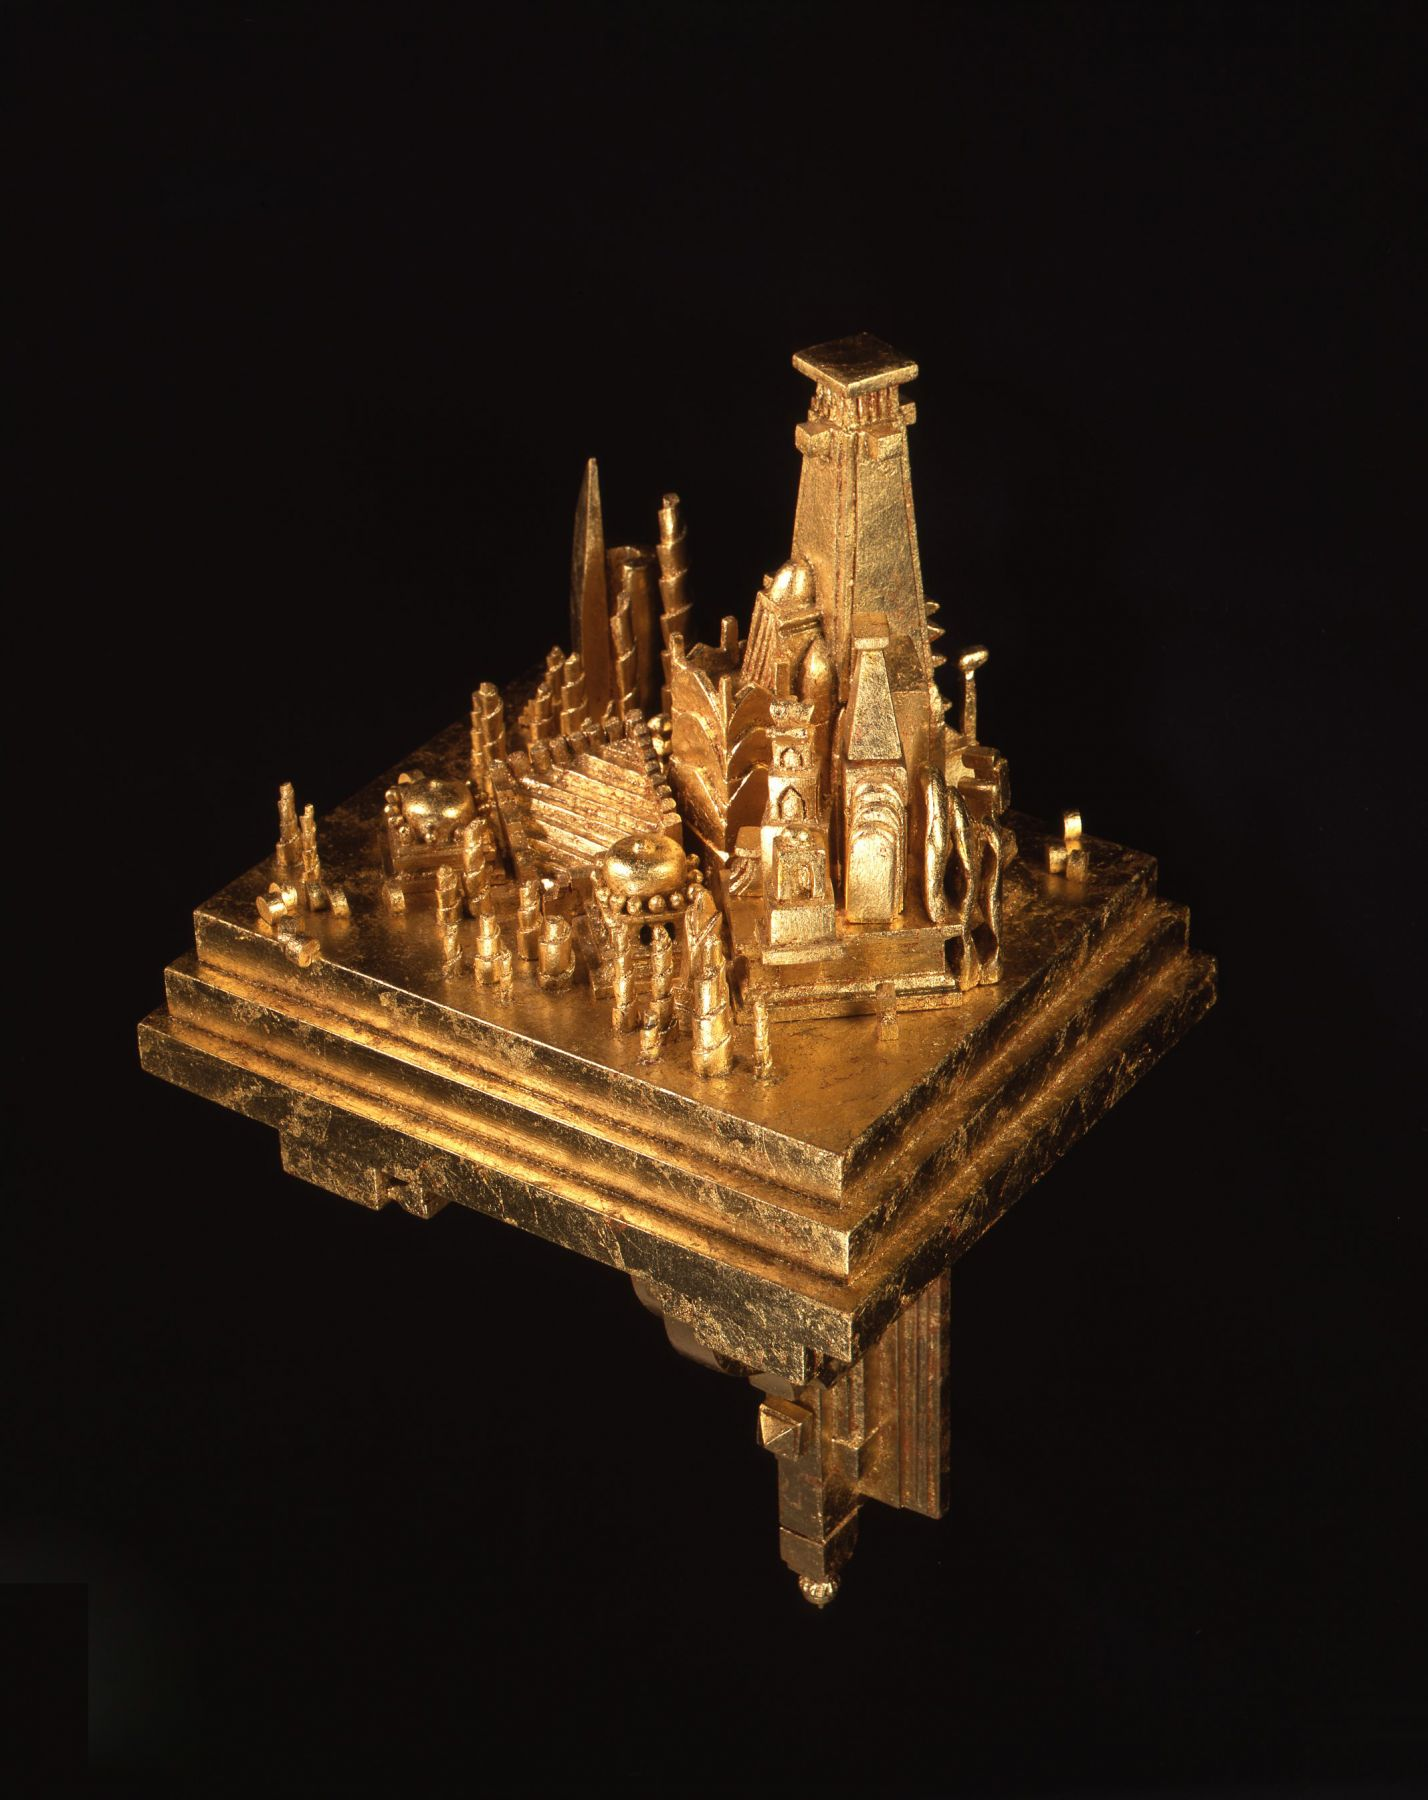 Holly Lane, The Well-Traveled Mind, 2006, gilded wood: basswood, composite gold leaf, 21 3/4 x 10 5/8 x 8 3/4 inches